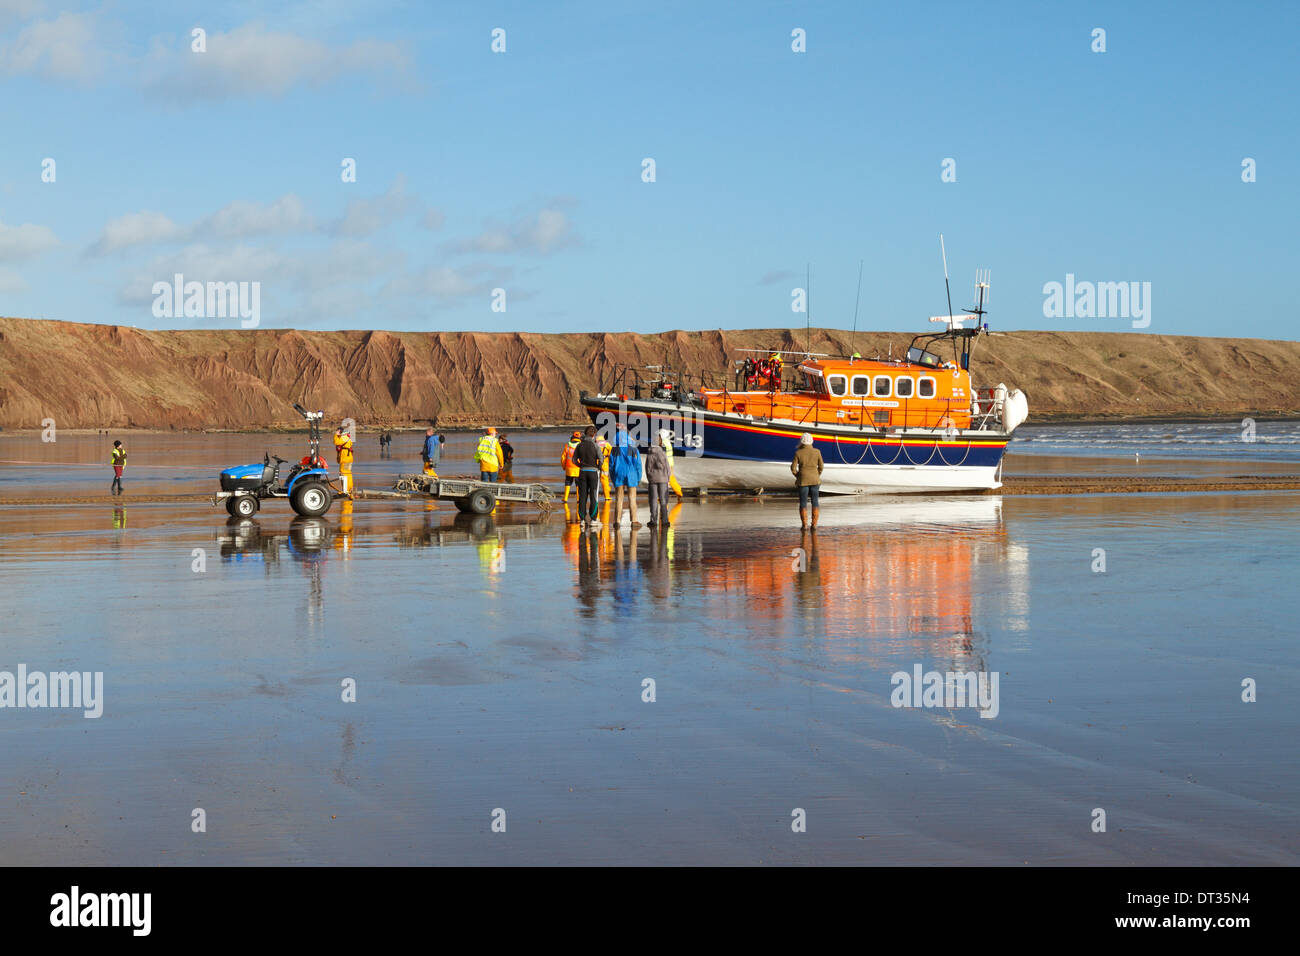 RNLI Lifeboat returning from a sea exercise off Filey, North Yorkshire, England, UK. - Stock Image